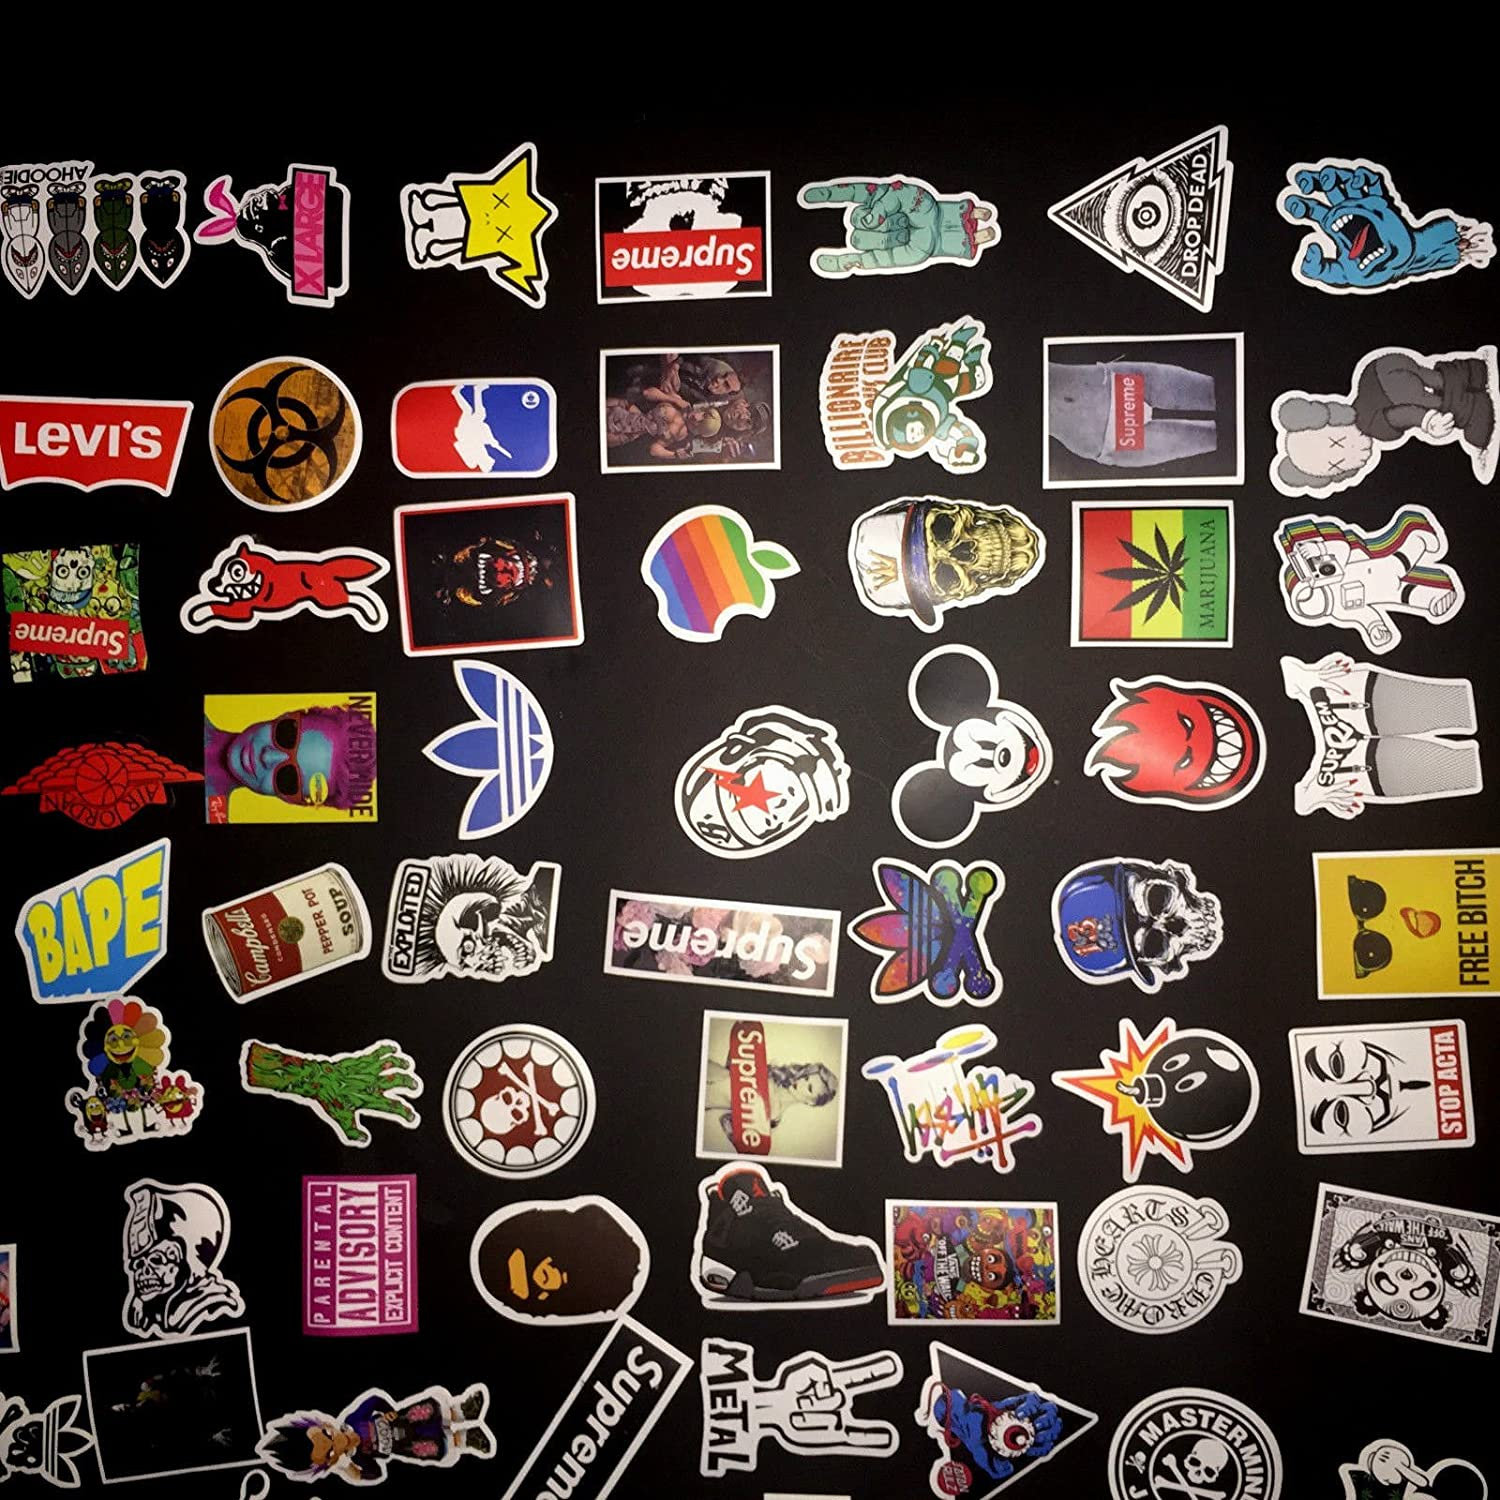 Amazon com not random100 piece skateboard stickers vintage vinyl laptop luggage decals dope sticker mix lot home kitchen